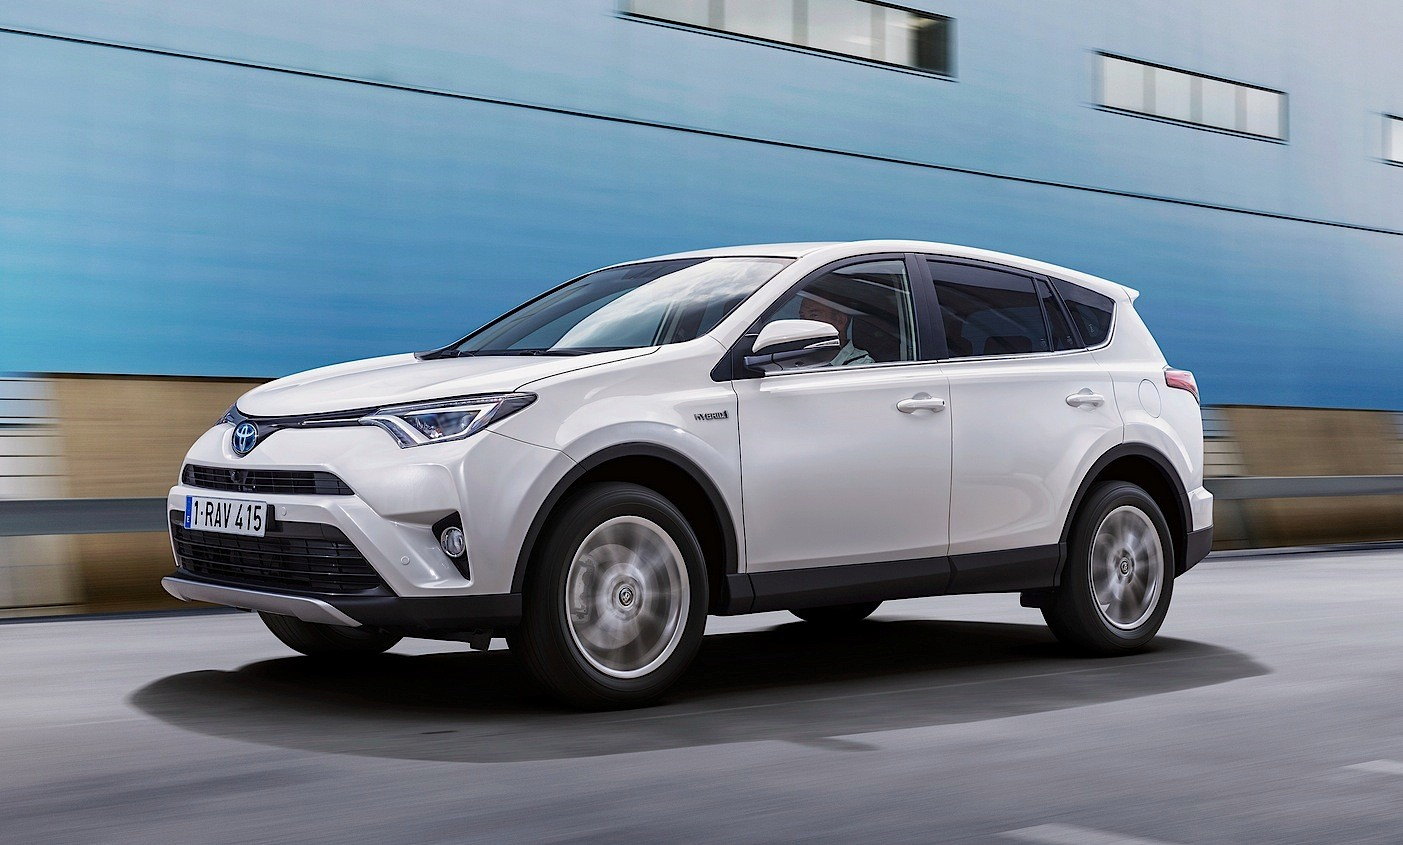 Toyota Rav4 Trd >> 2016 Toyota RAV4 Hybrid One Limited Edition Marks European Debut of the Prius SUV - autoevolution